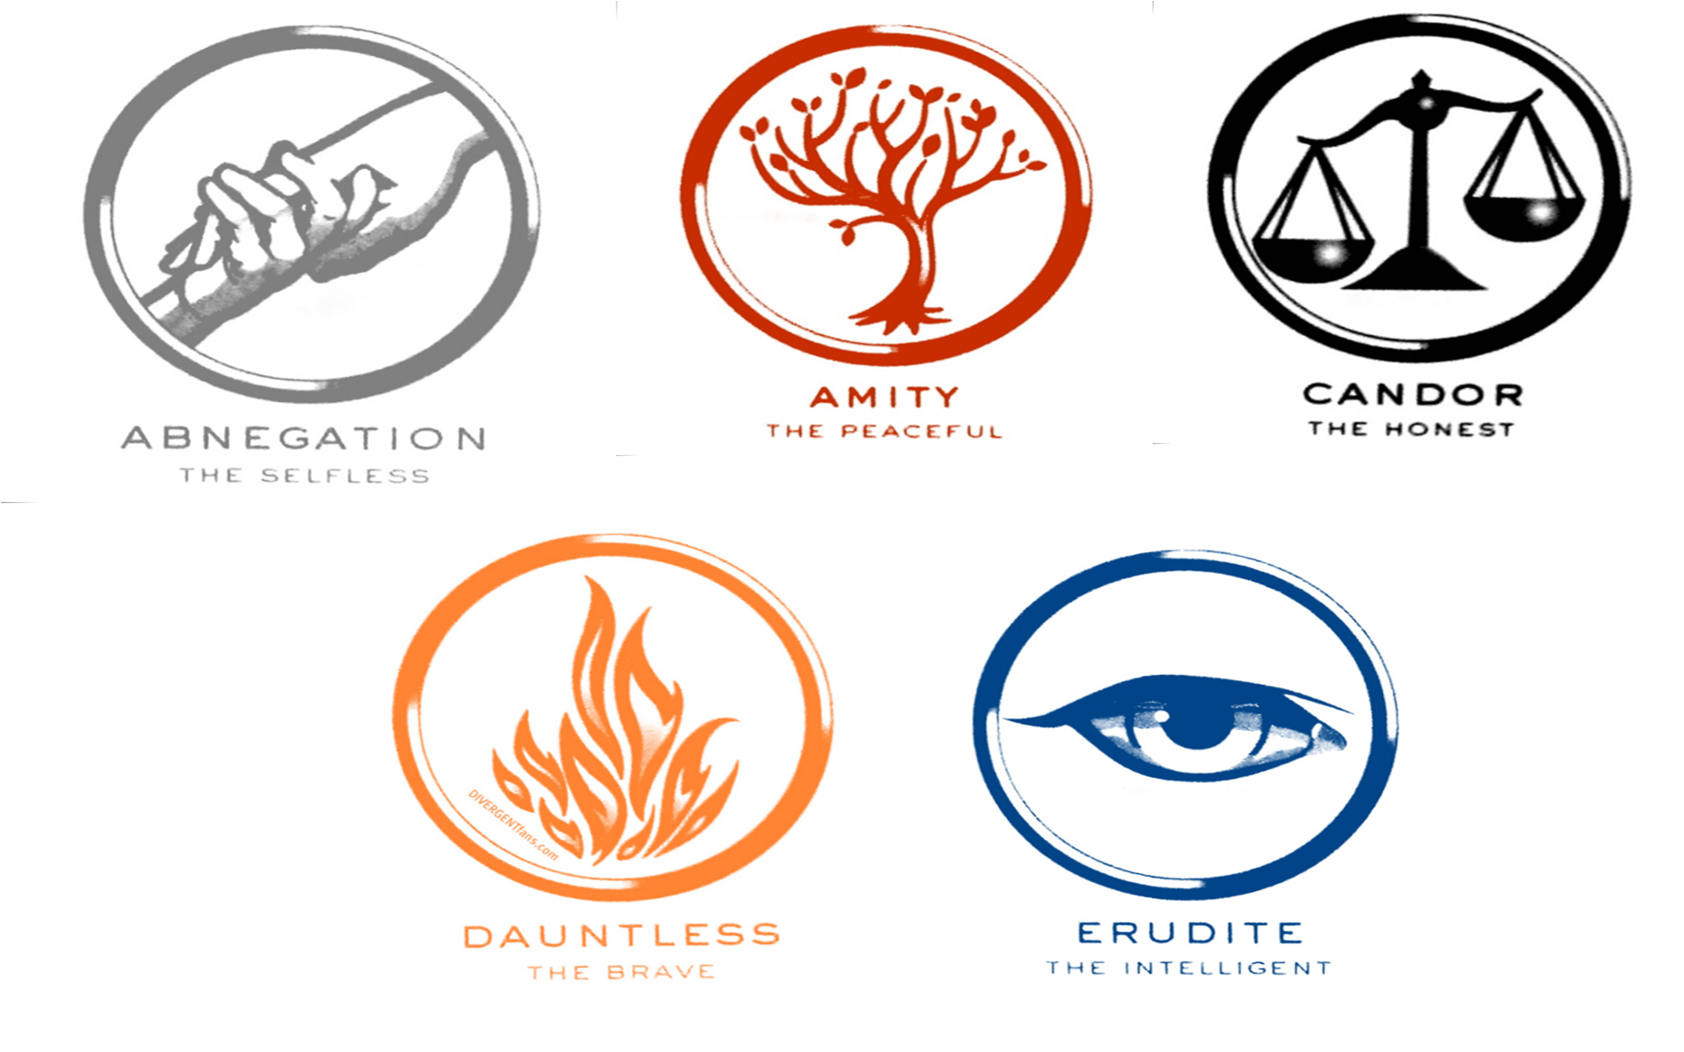 Faction Images what faction is the user above in? - forum games - mlp forums